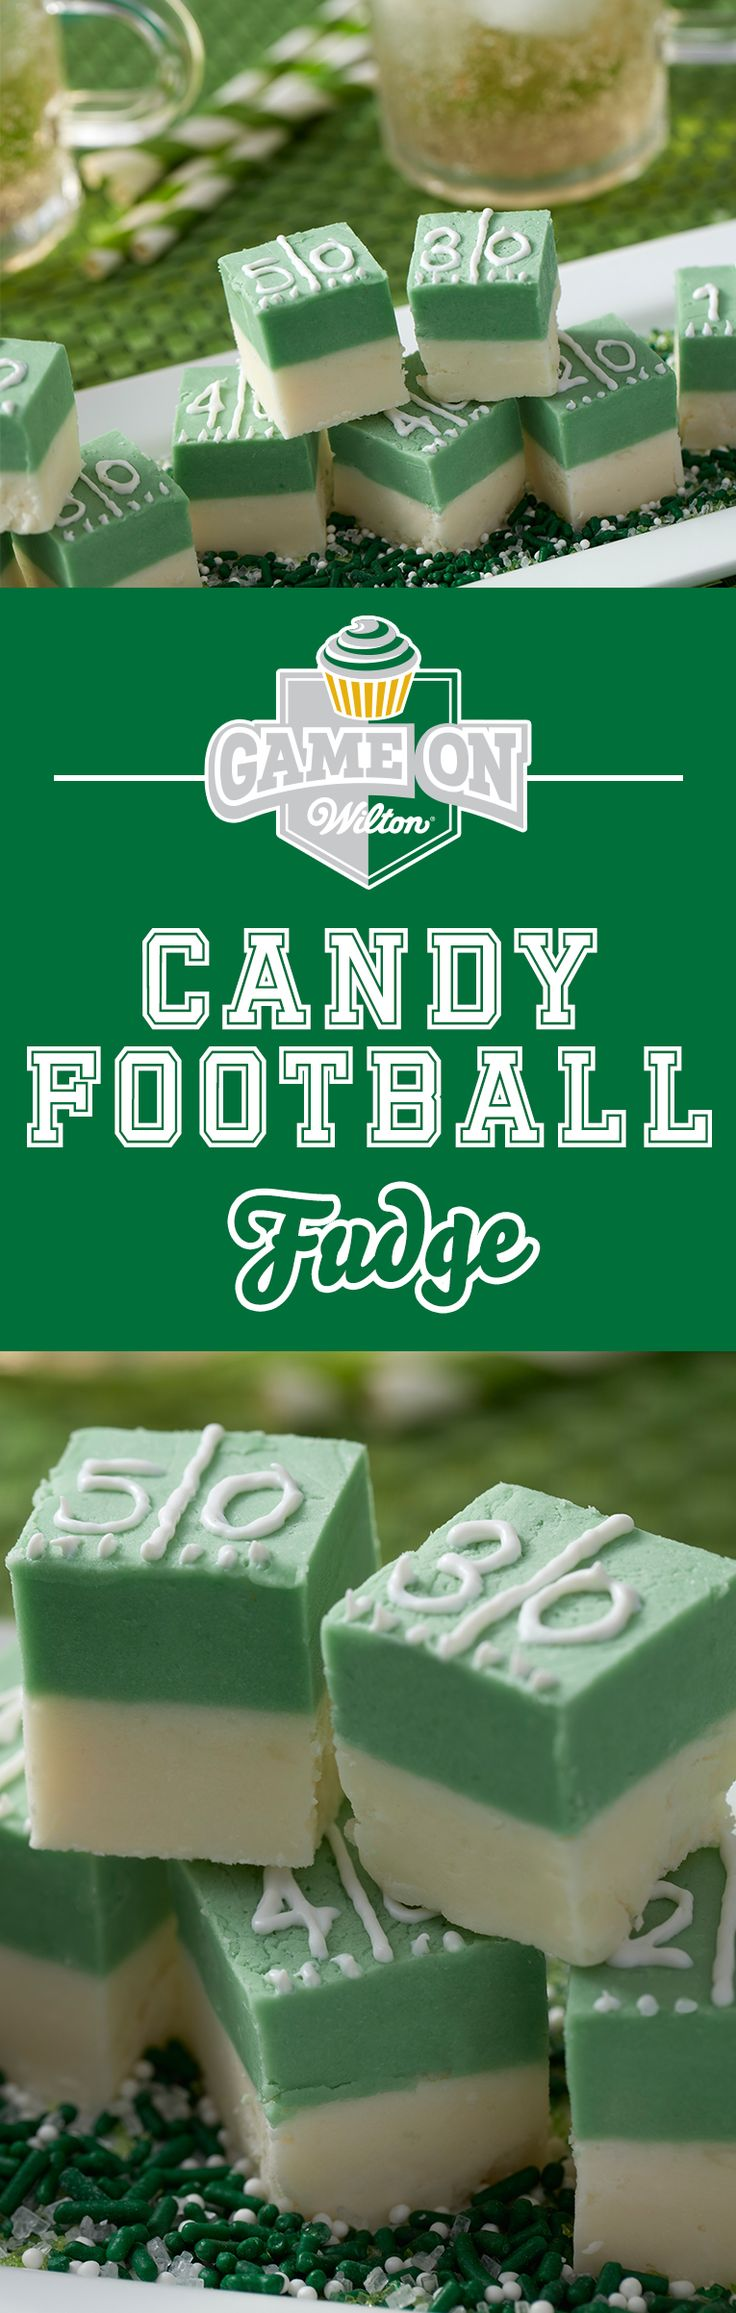 Learn to make this delicious Candy Melts football field fudge! This easy-to-make sweet treat is sure to be a hit at any football tailgate or party. It's just the right bite for any football fan.